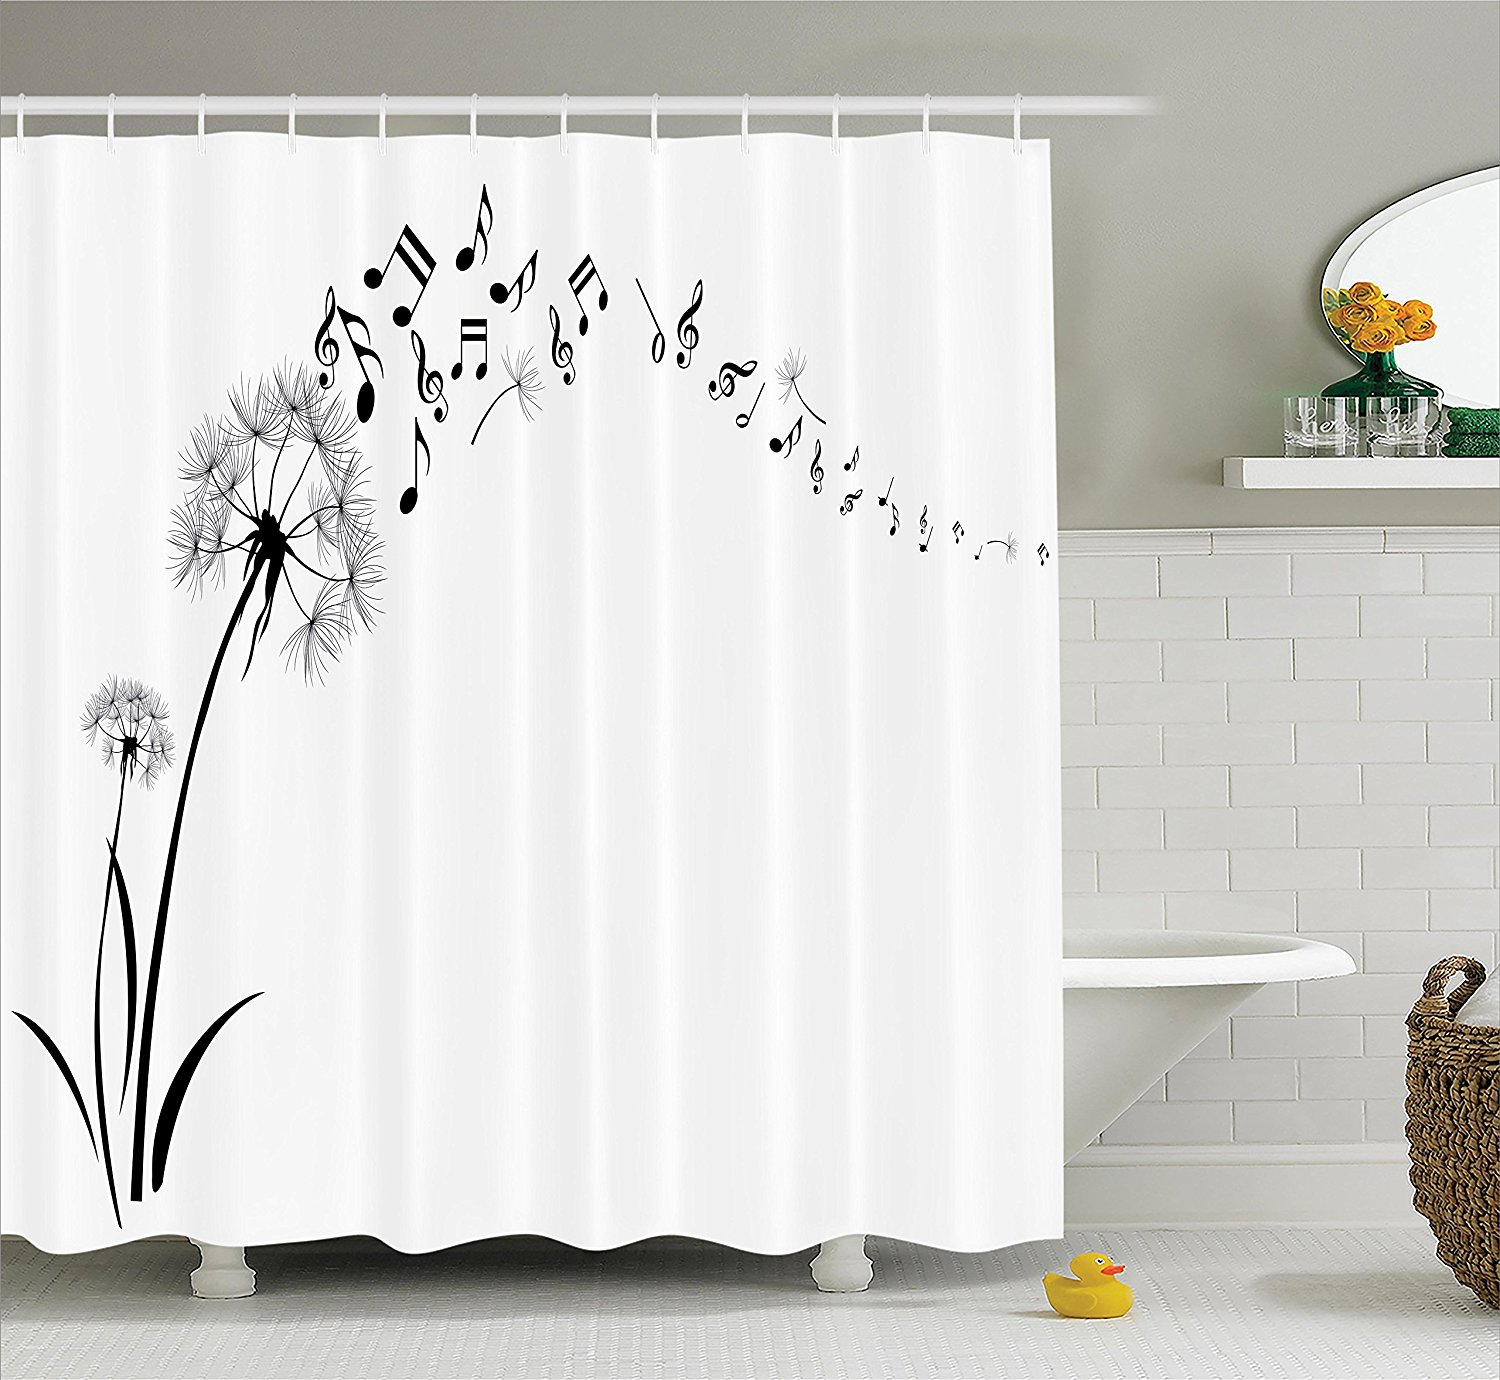 floral shower curtain set music decor by dandelion with flying music notes summer garden art print bathroom accessories with hooks 69w x by